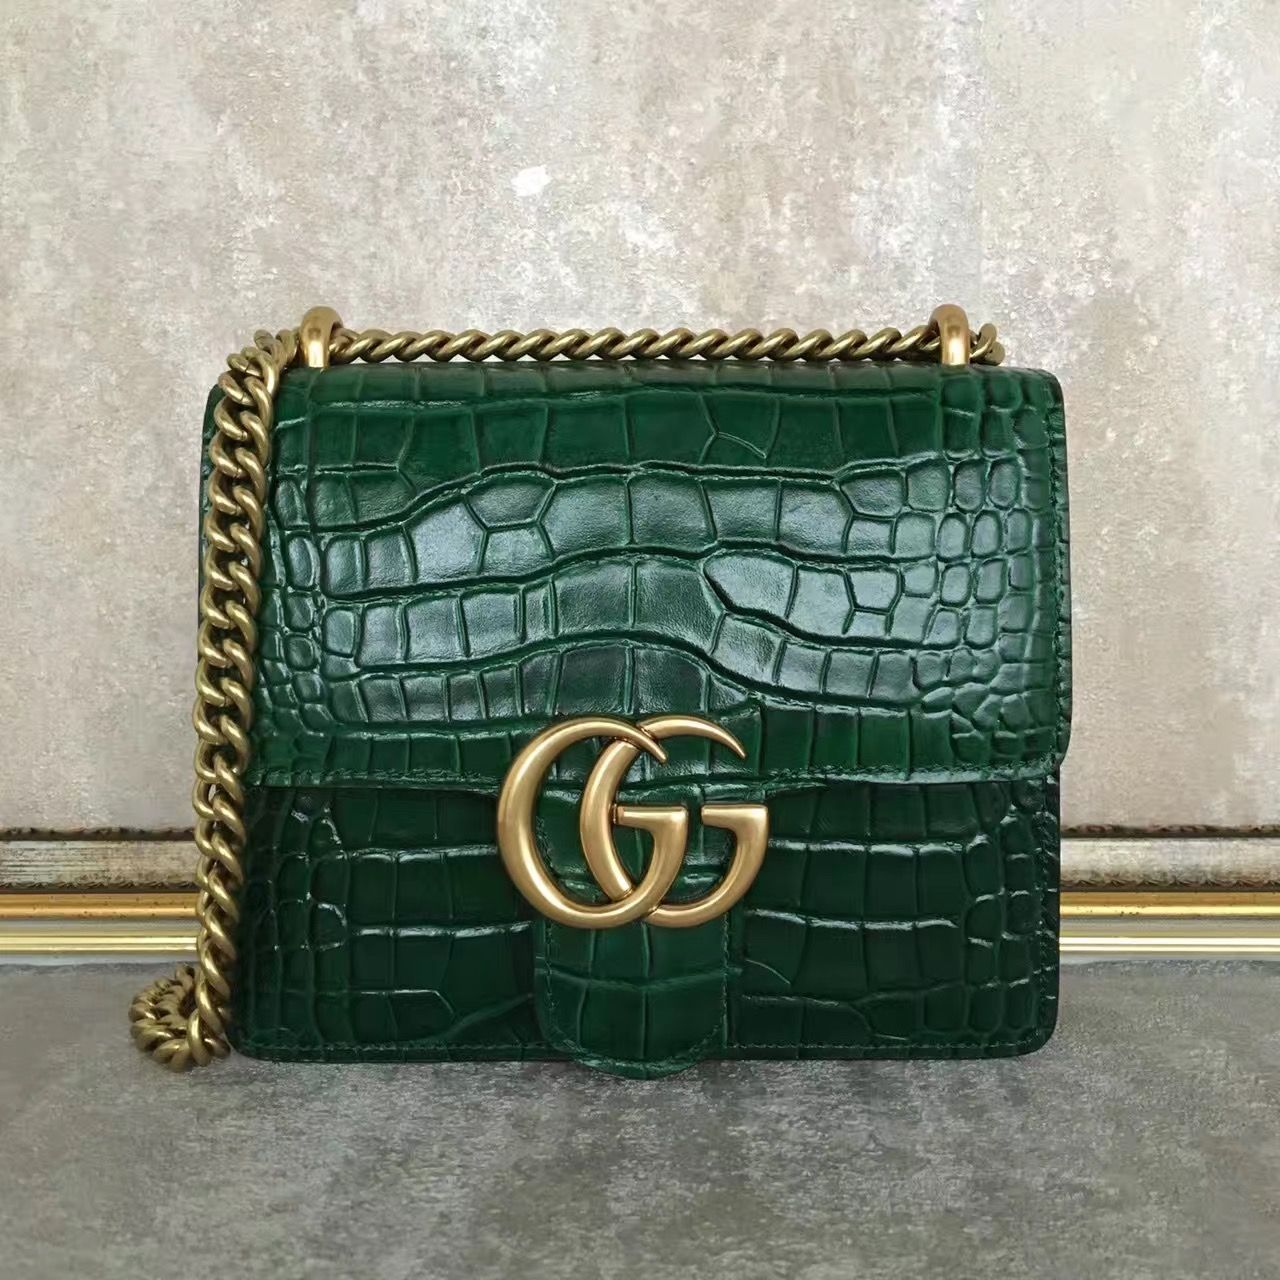 be0c3541938d Gucci 431384 GG Marmont Crocodile Calf Leather Small Shoulder Bag Green 2016